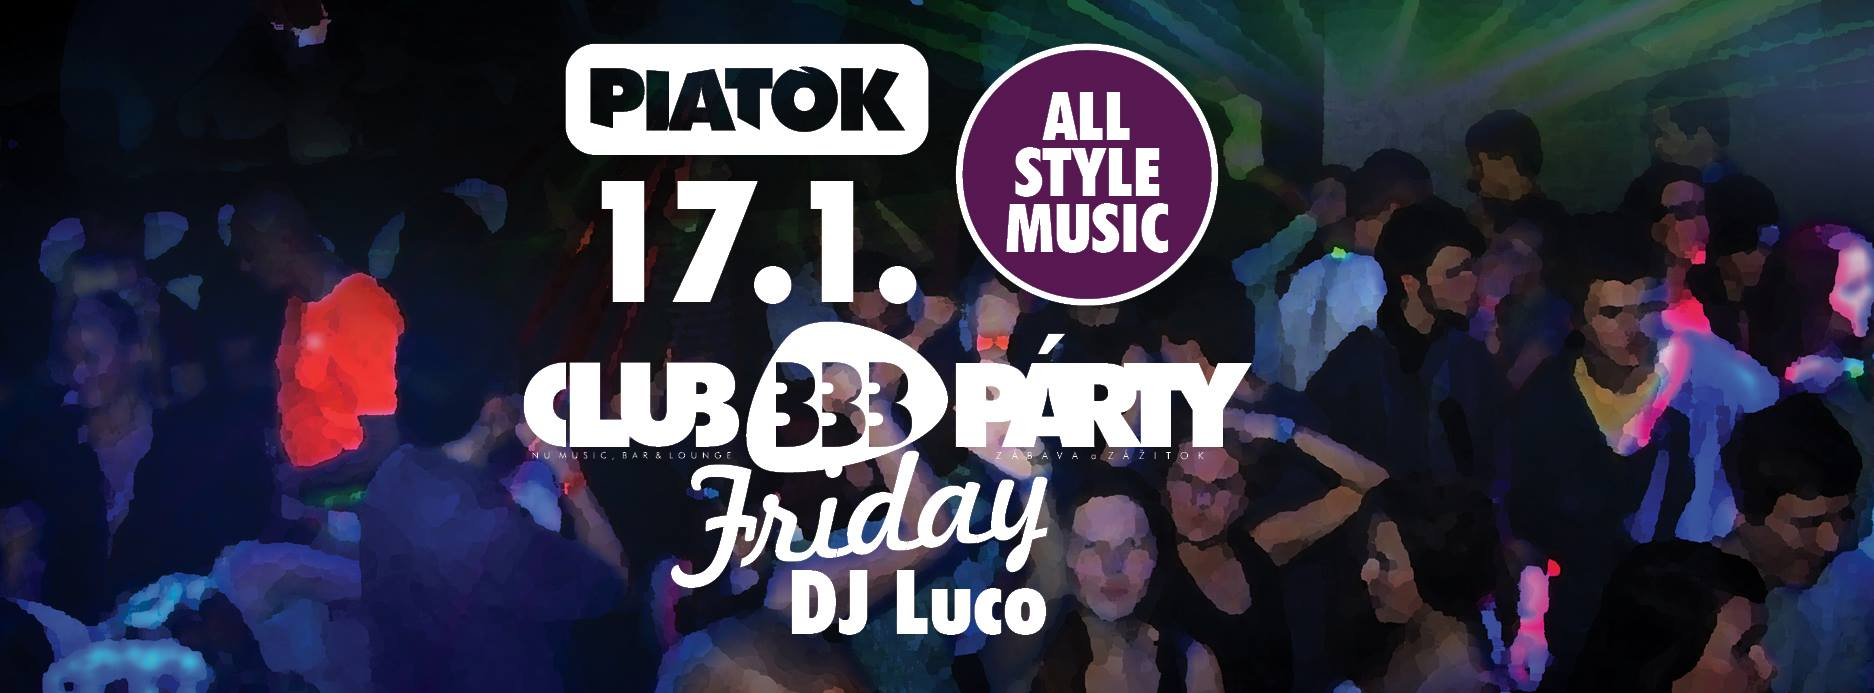 CLUB333PÁRTY FRIDAY / DJ LUCO / ALL STYLE MUSIC